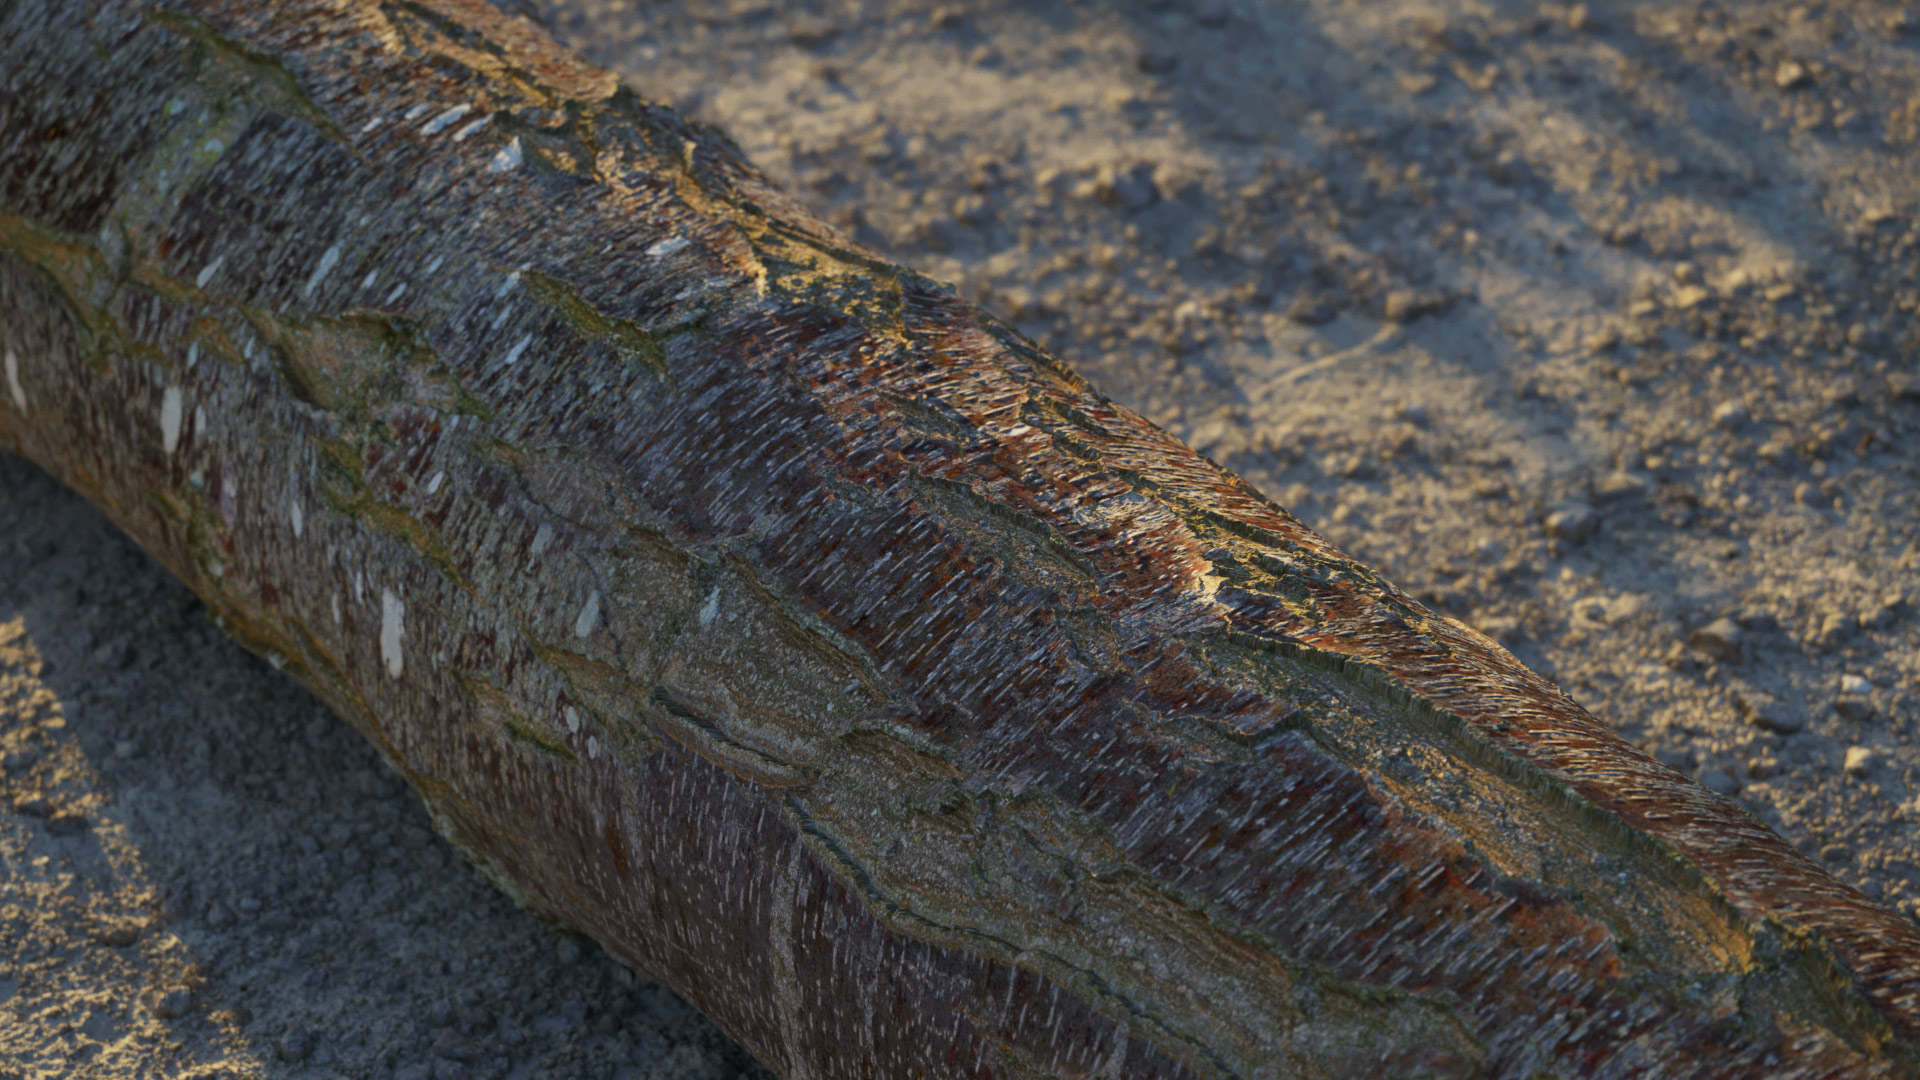 The image shows a close-up render made using the dock material from Friendly Shade library